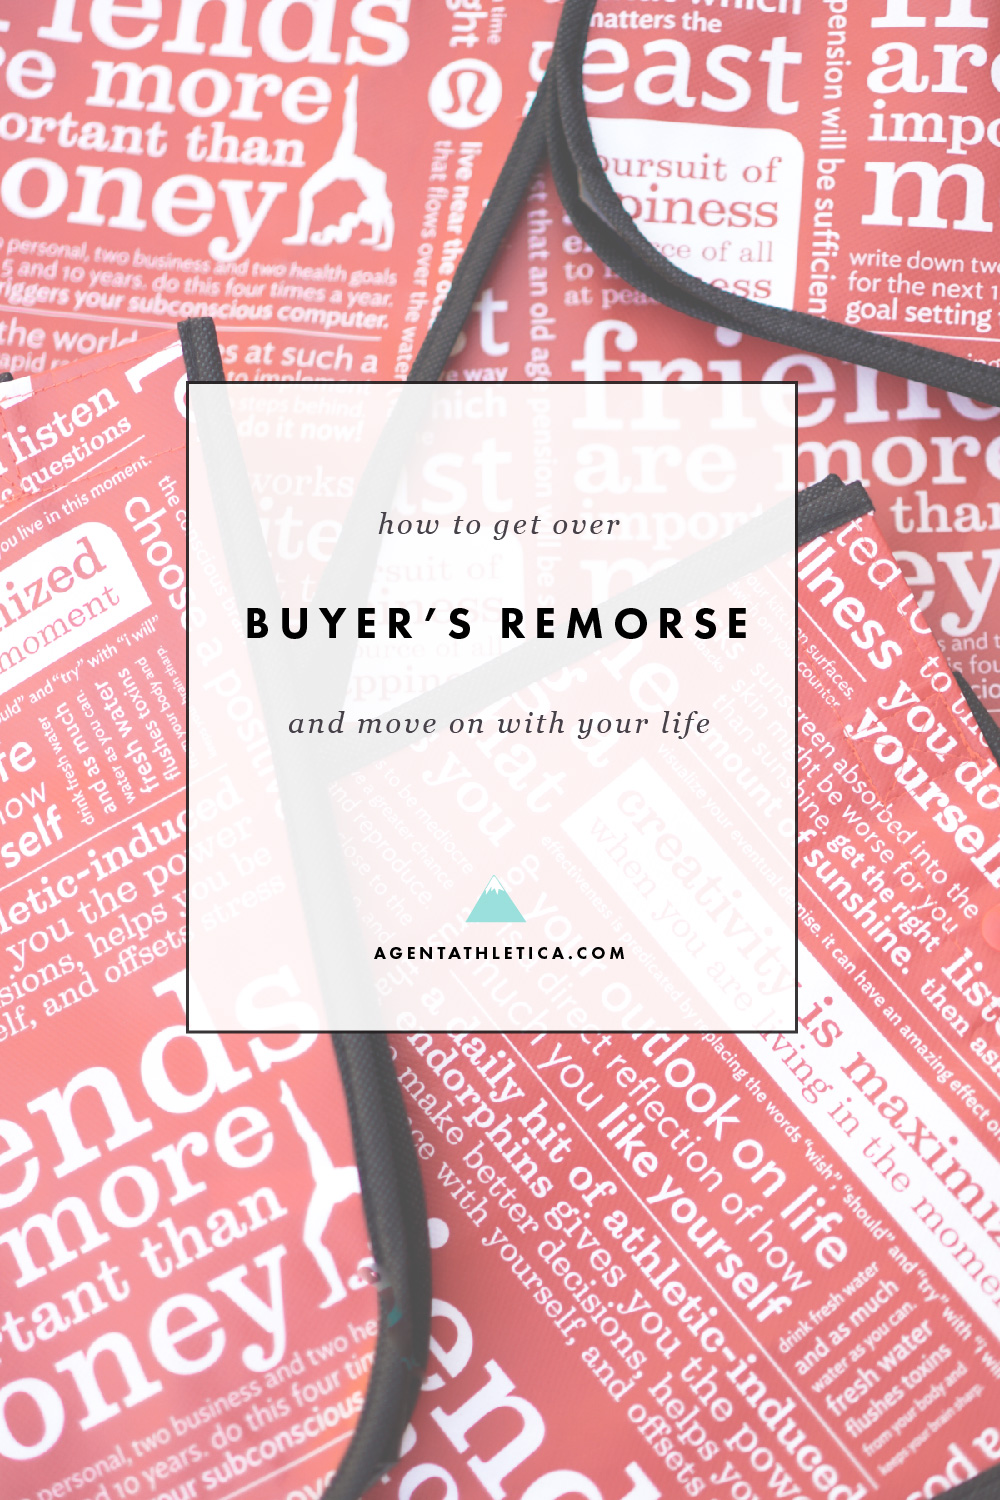 What to do about buyer's remorse when you've made some bad buying decisions